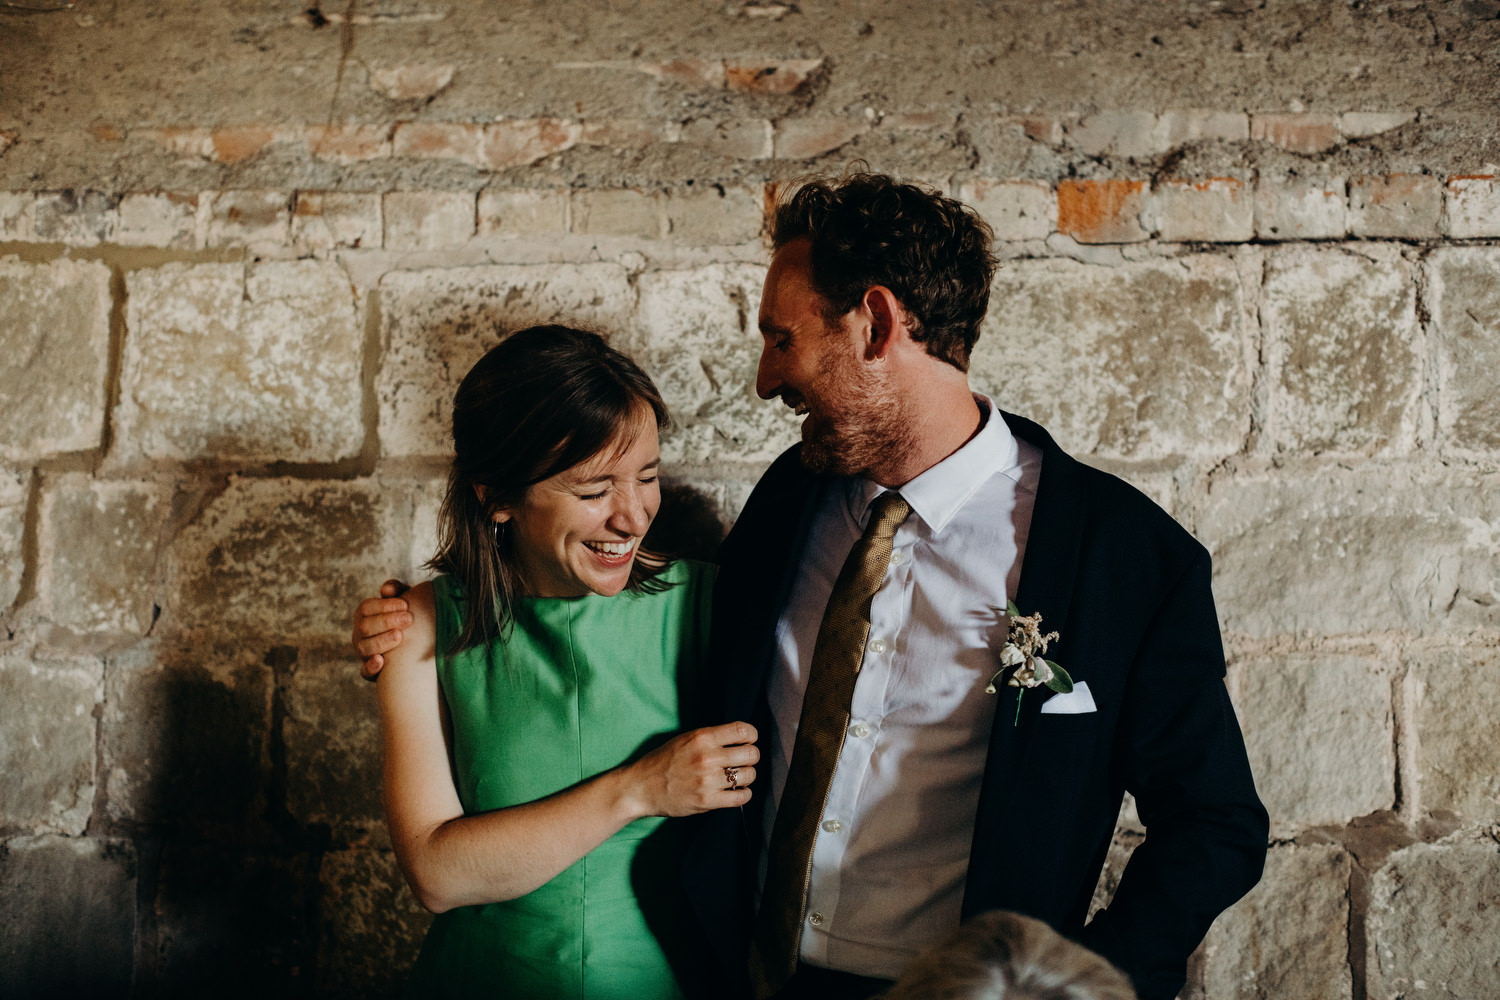 two guests laugh while embracing